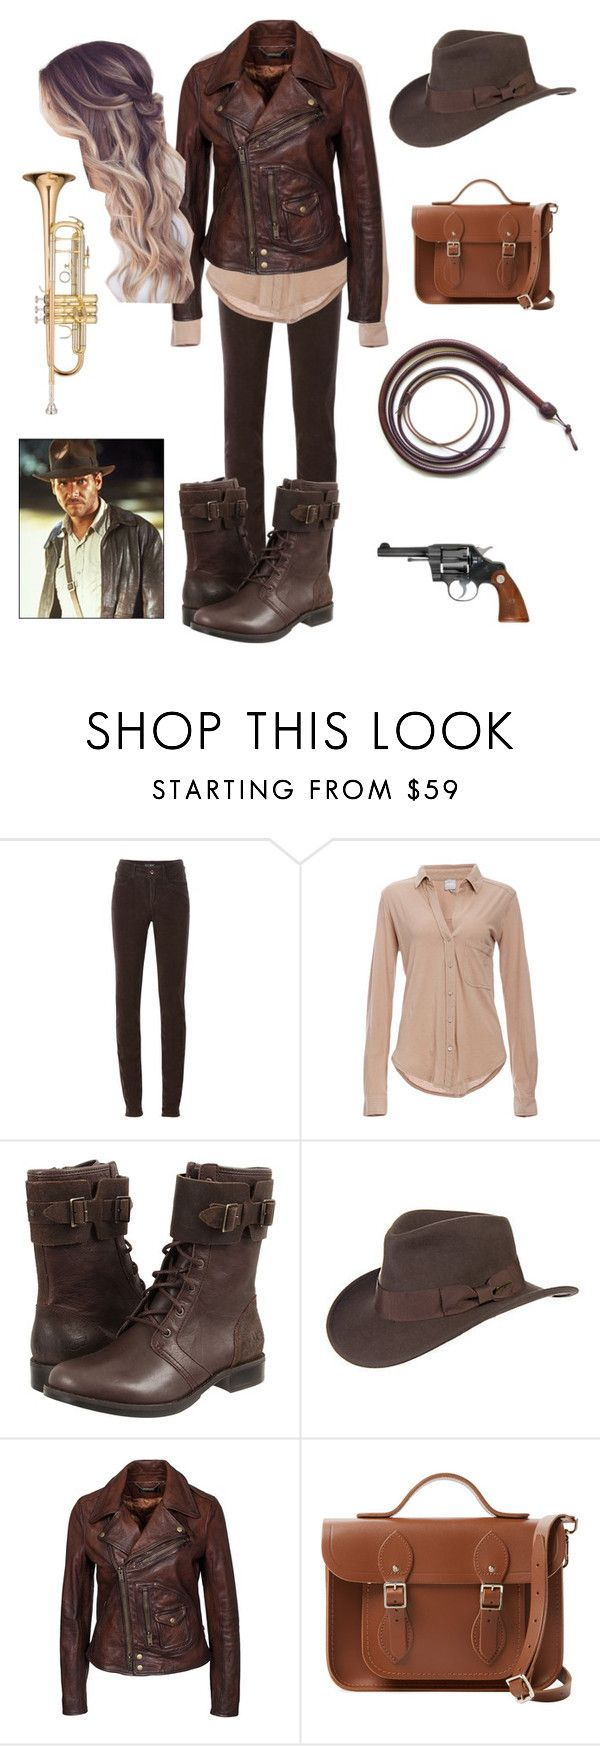 """Grace playing the Indiana Jones theme"" by xreal-bands-save-fansx ❤ liked on Polyvore featuring beauty, Armani Jeans, Bobi, UGG Australia, Overland Sheepskin Co., Polo Ralph Lauren, The Cambridge Satchel Company and Ravel"